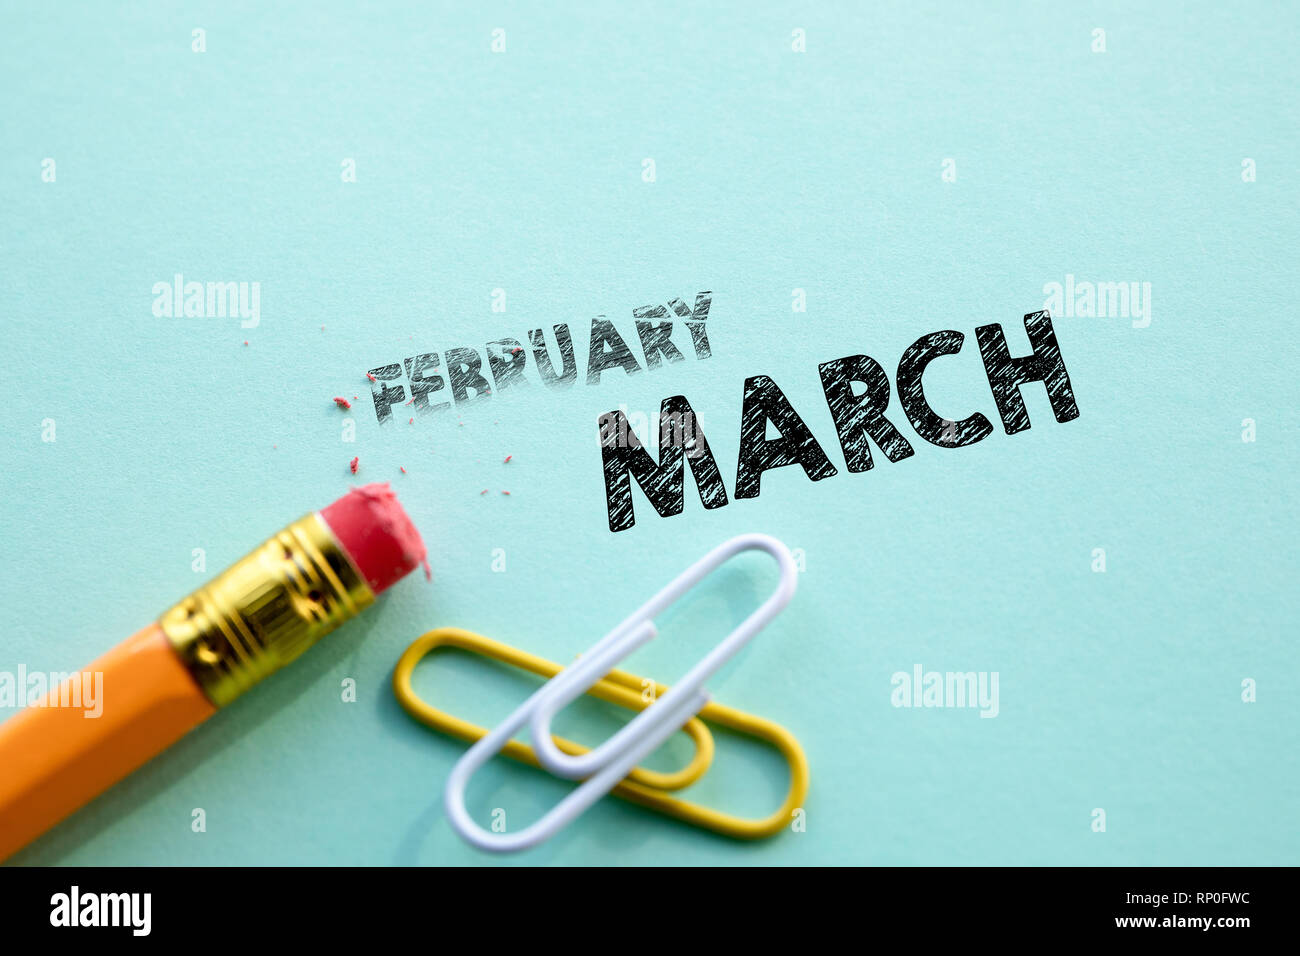 Making February in to March by eraser. Concept for action and reaching goals - Stock Image